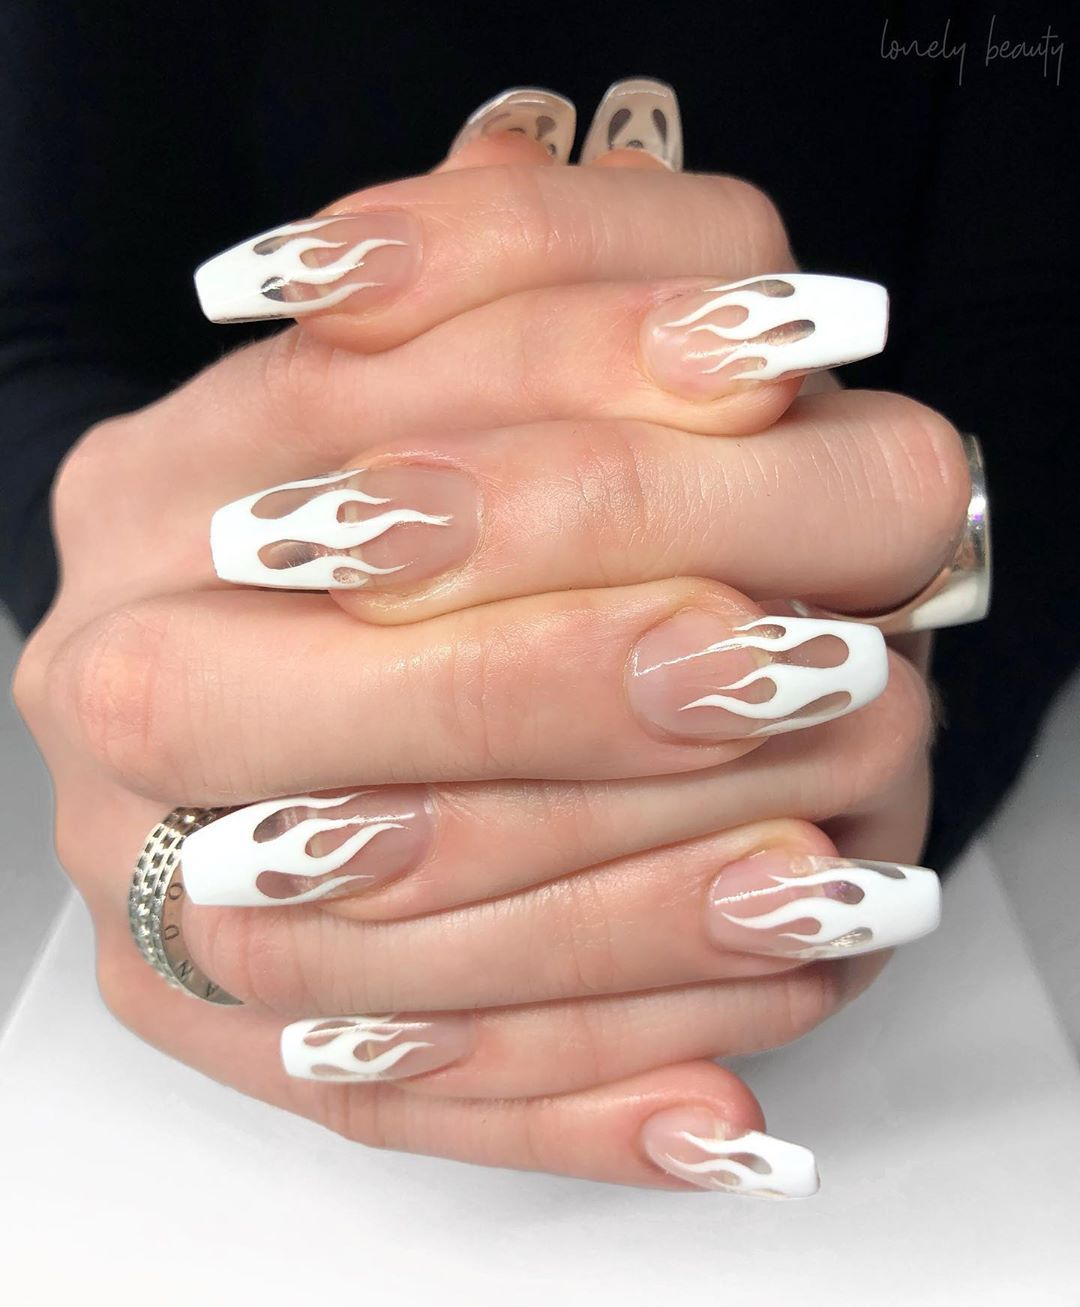 Hand Painted White Flames Overtop Of Clear Acrylics For Odette Inspo Bhambnails Coffin Nails Designs Fire Nails Clear Acrylic Nails